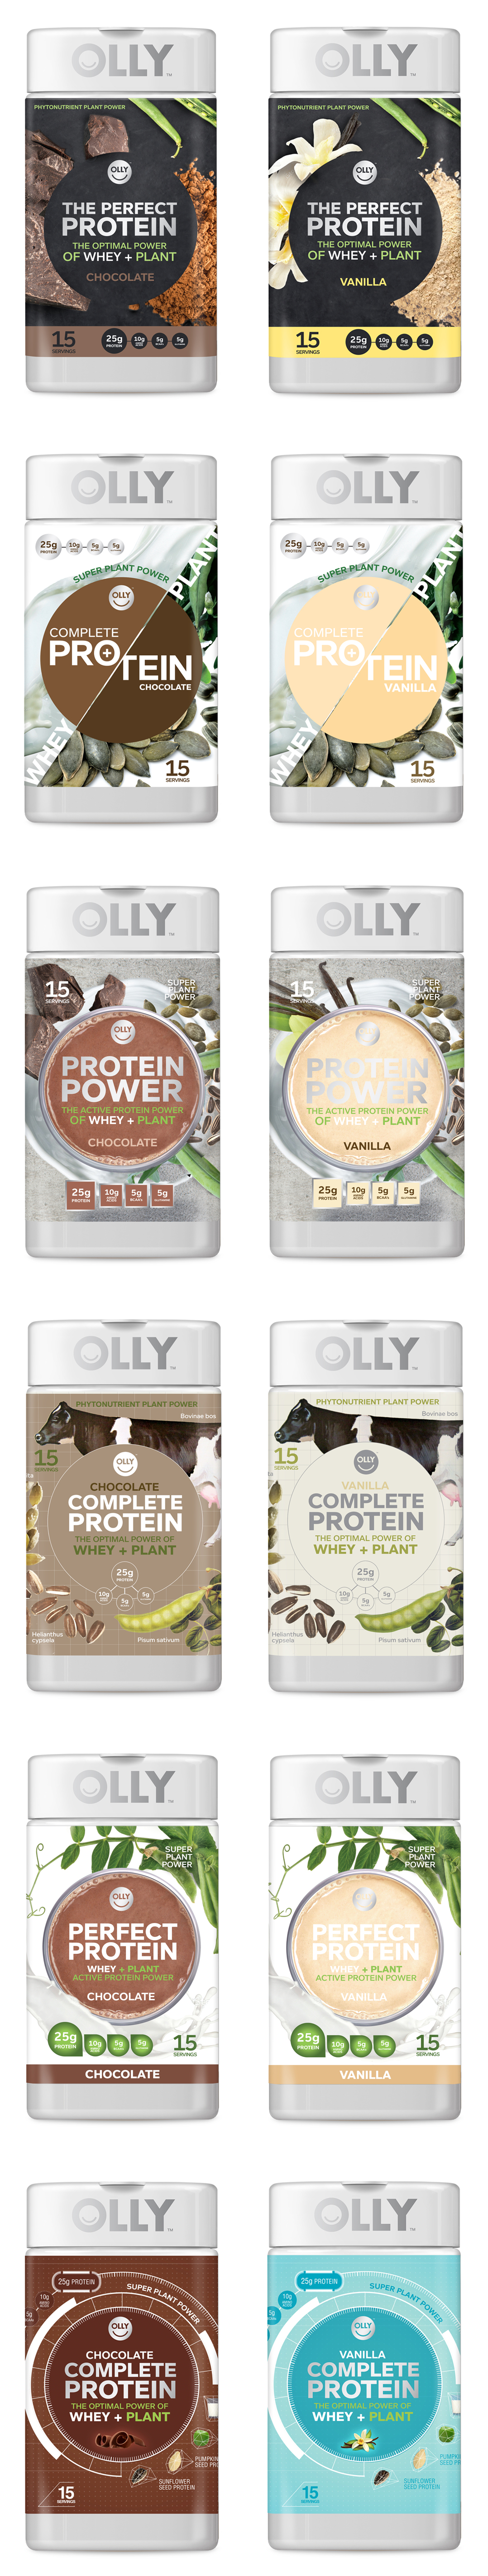 OLLY_cleanprotein.jpg